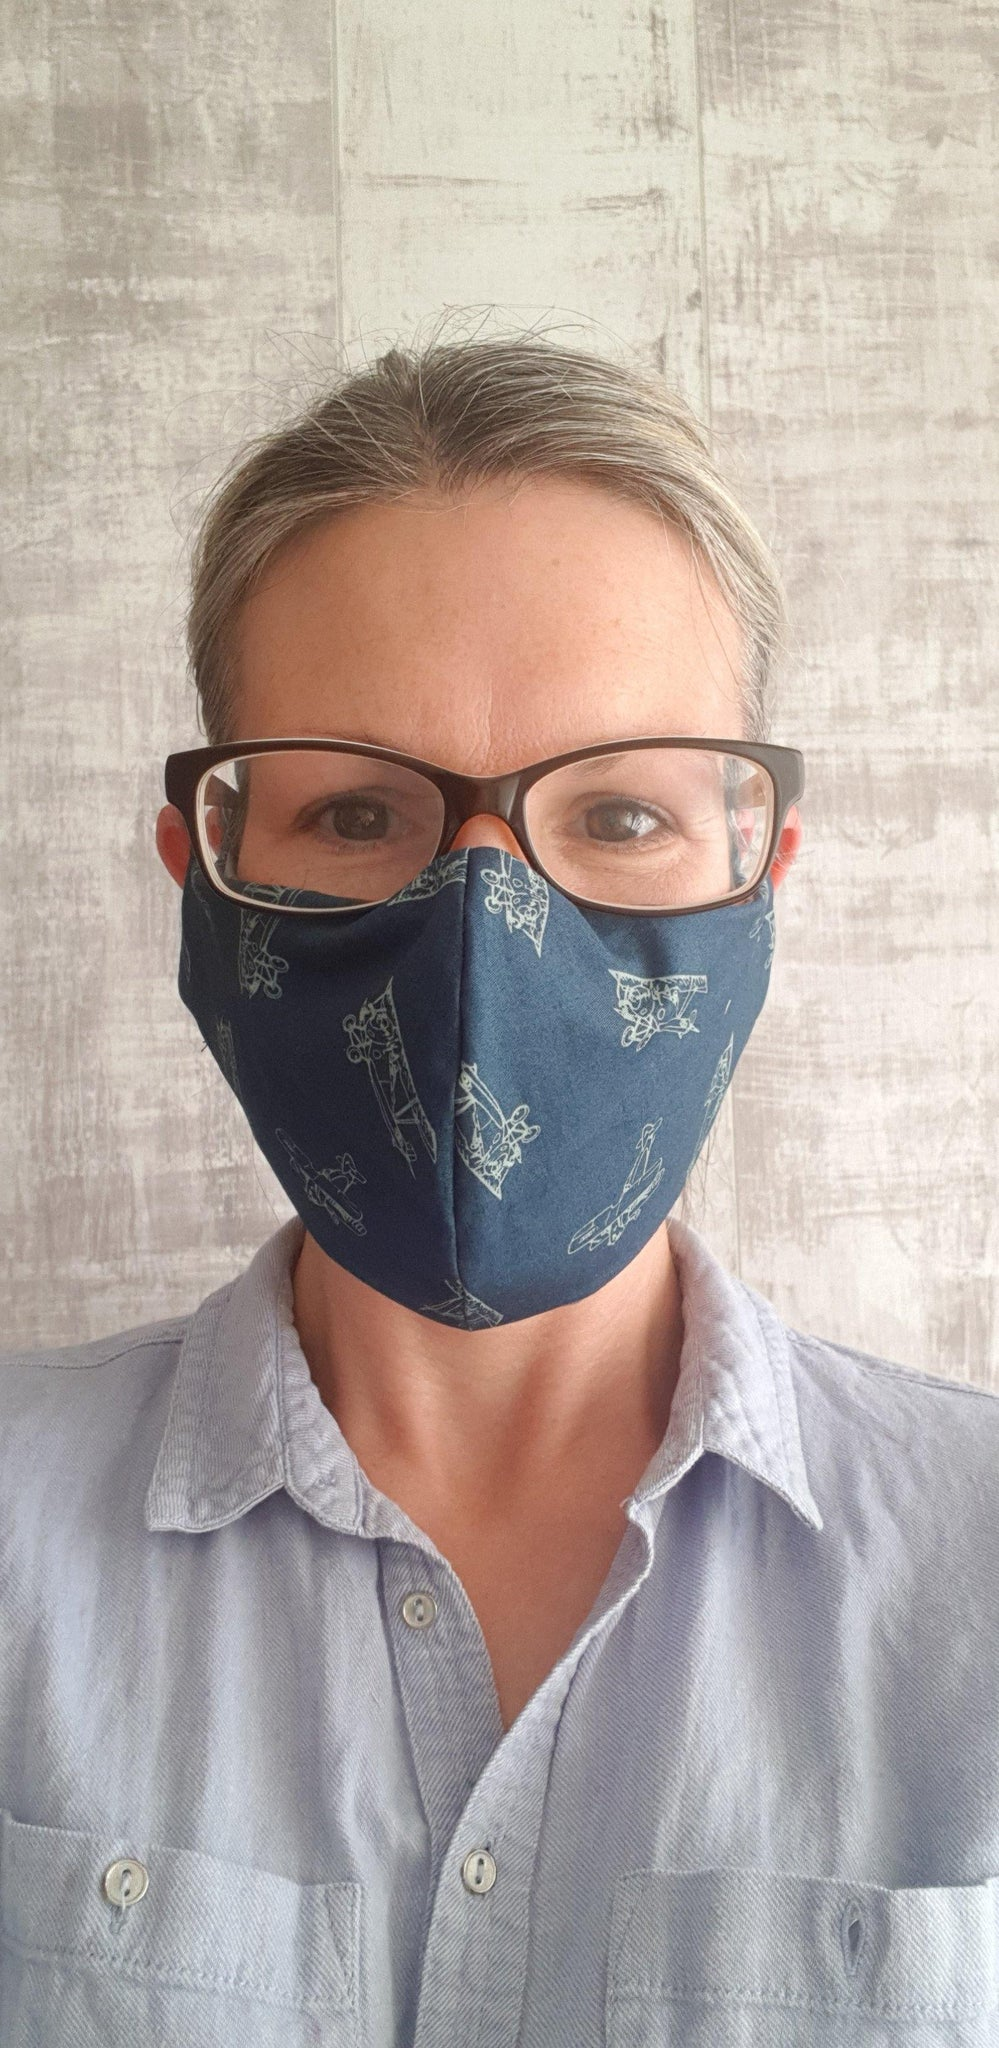 Navy planes fabric face mask.